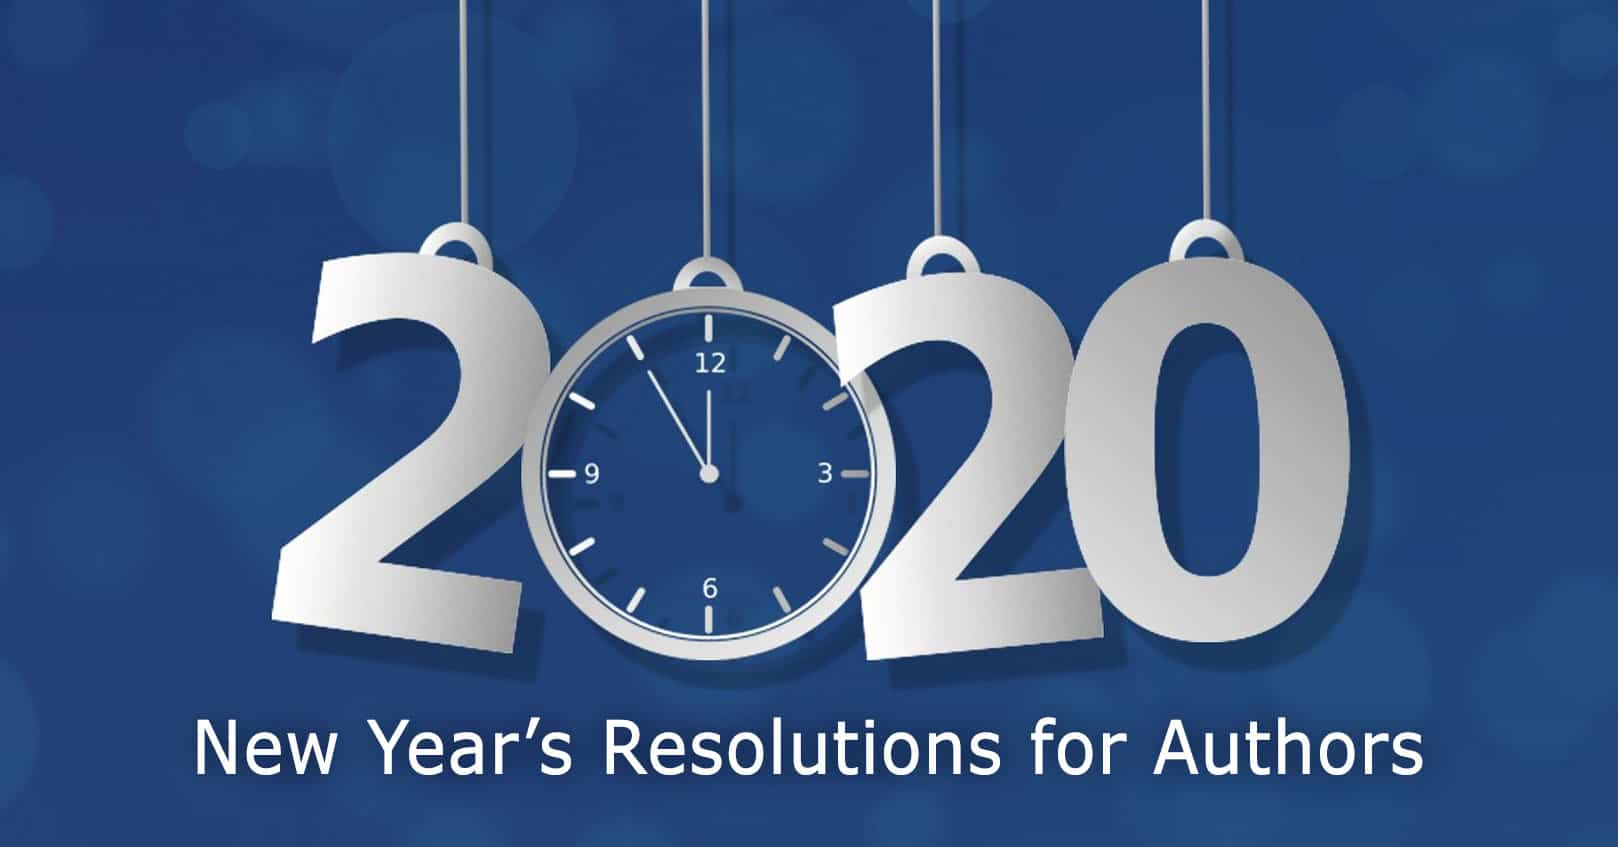 New Year's Resolutions for Authors